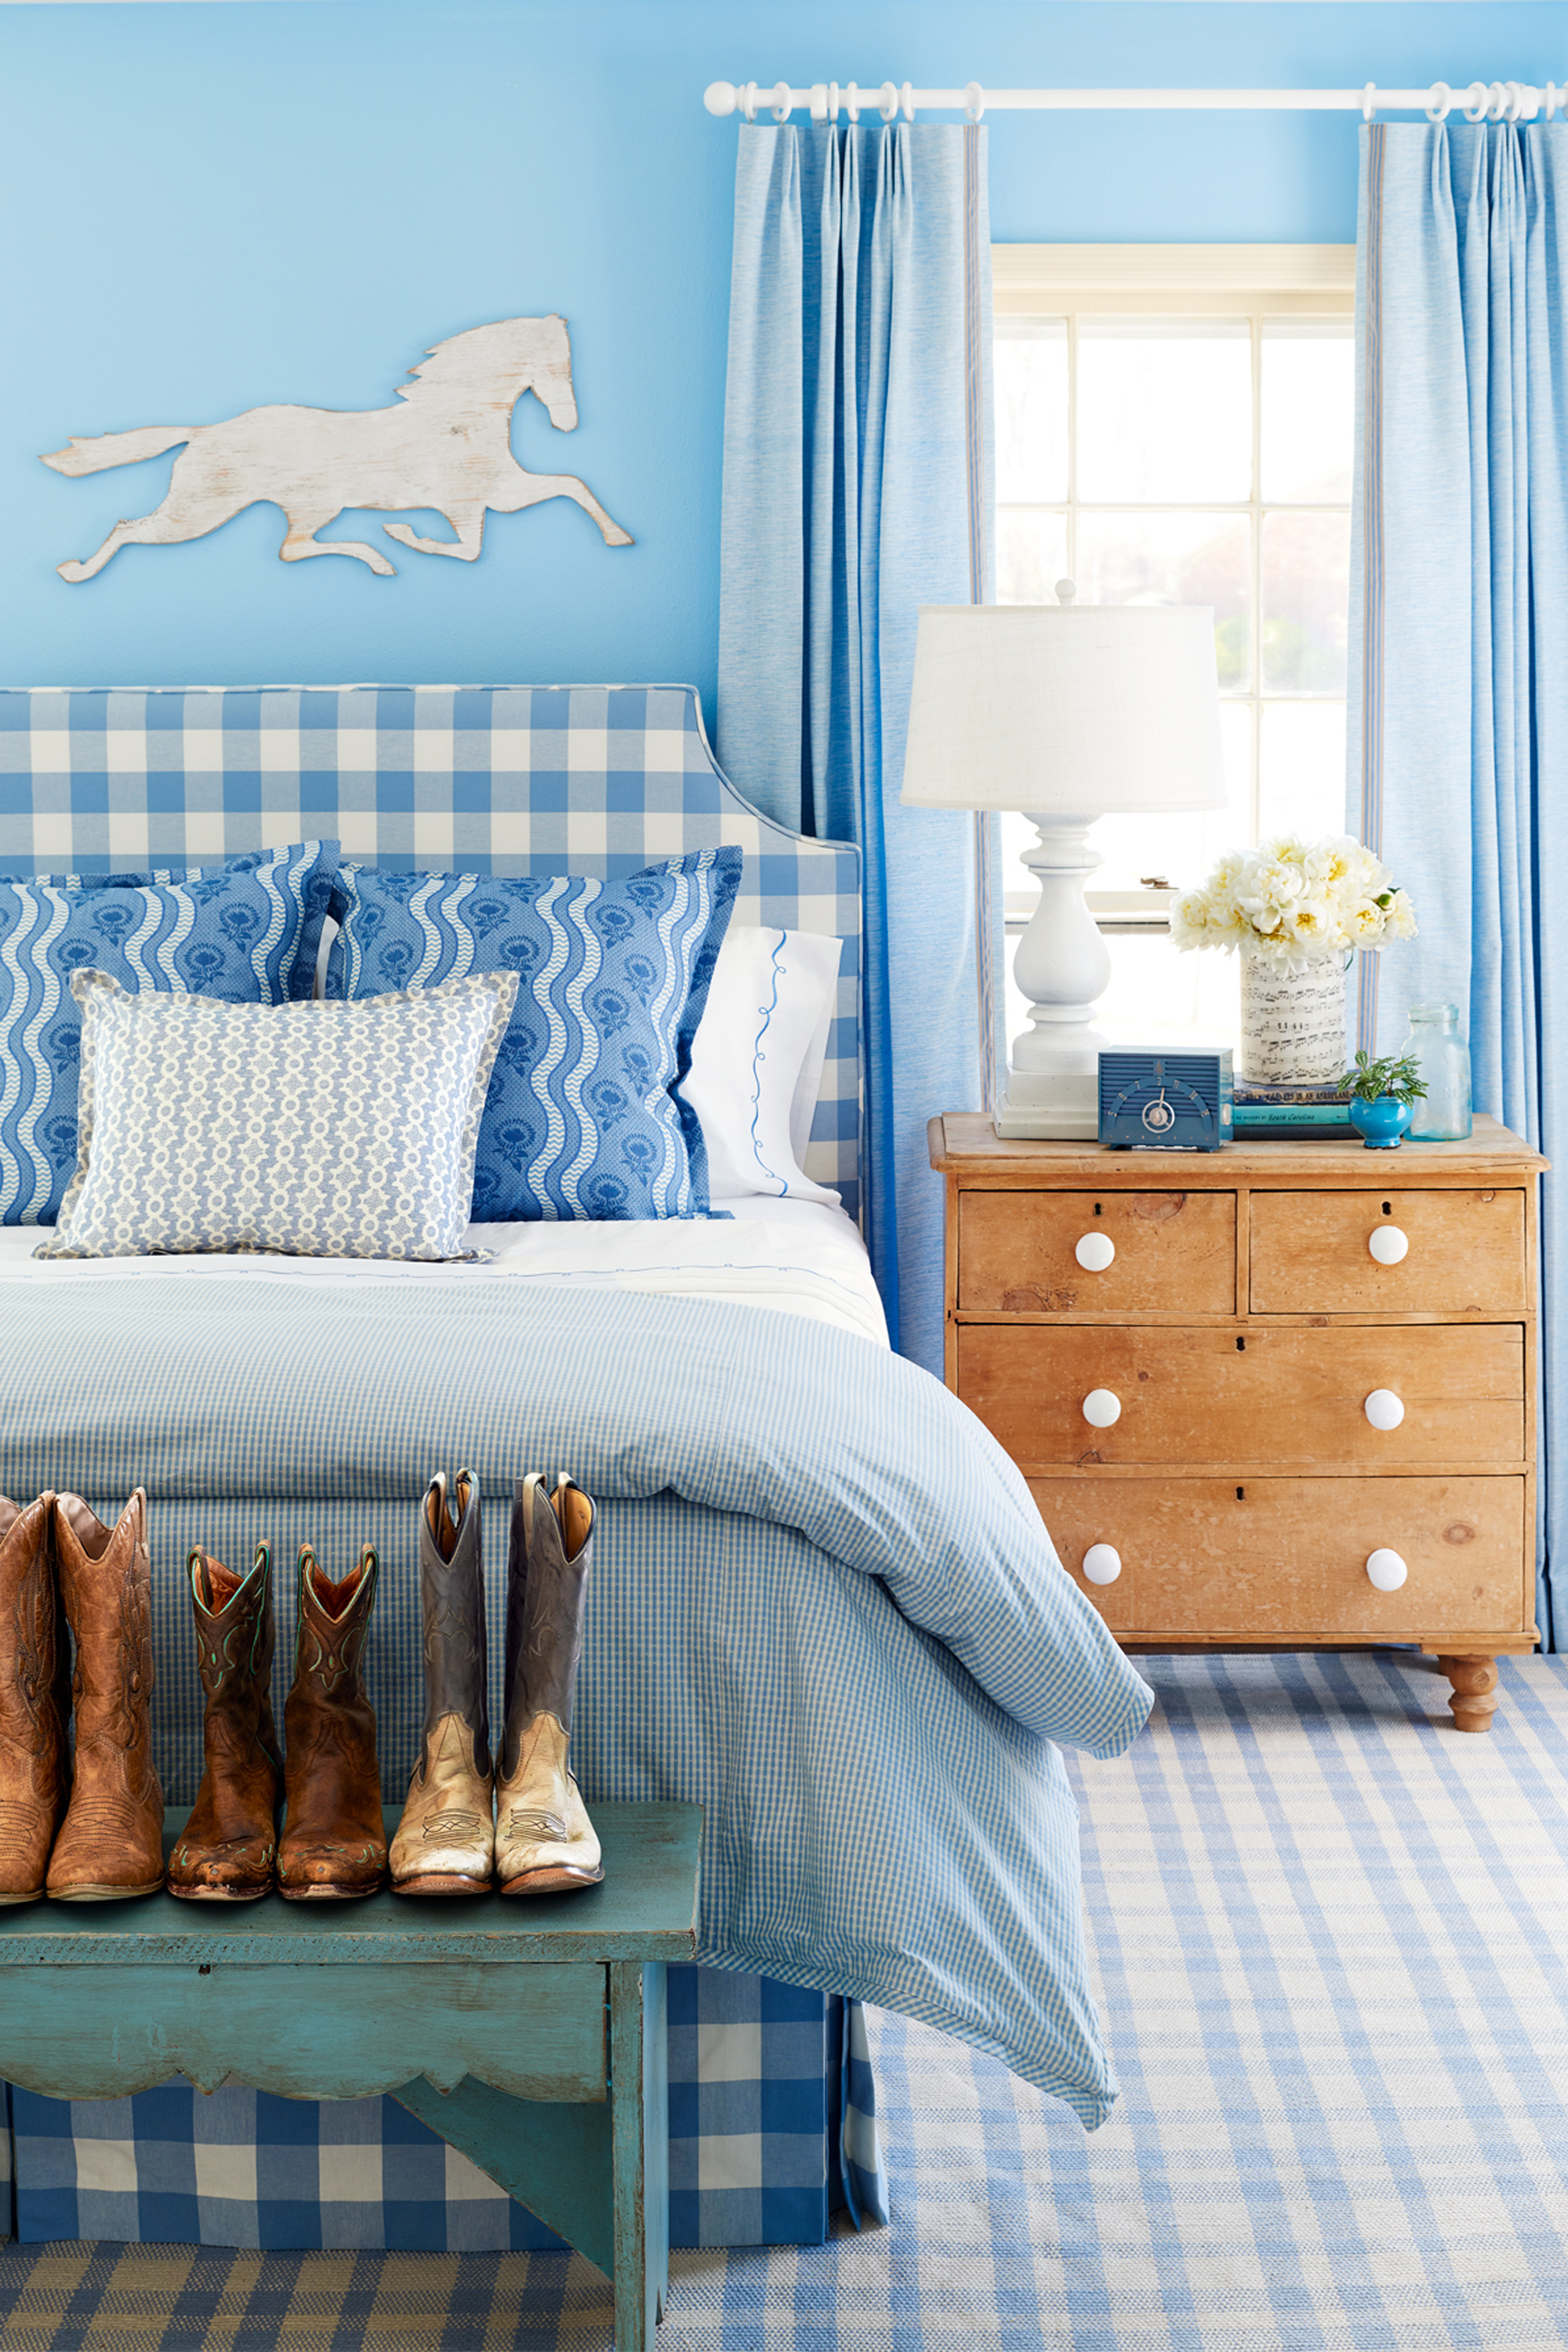 Bedroom wall decorating ideas blue - Bedroom Wall Decorating Ideas Blue 35